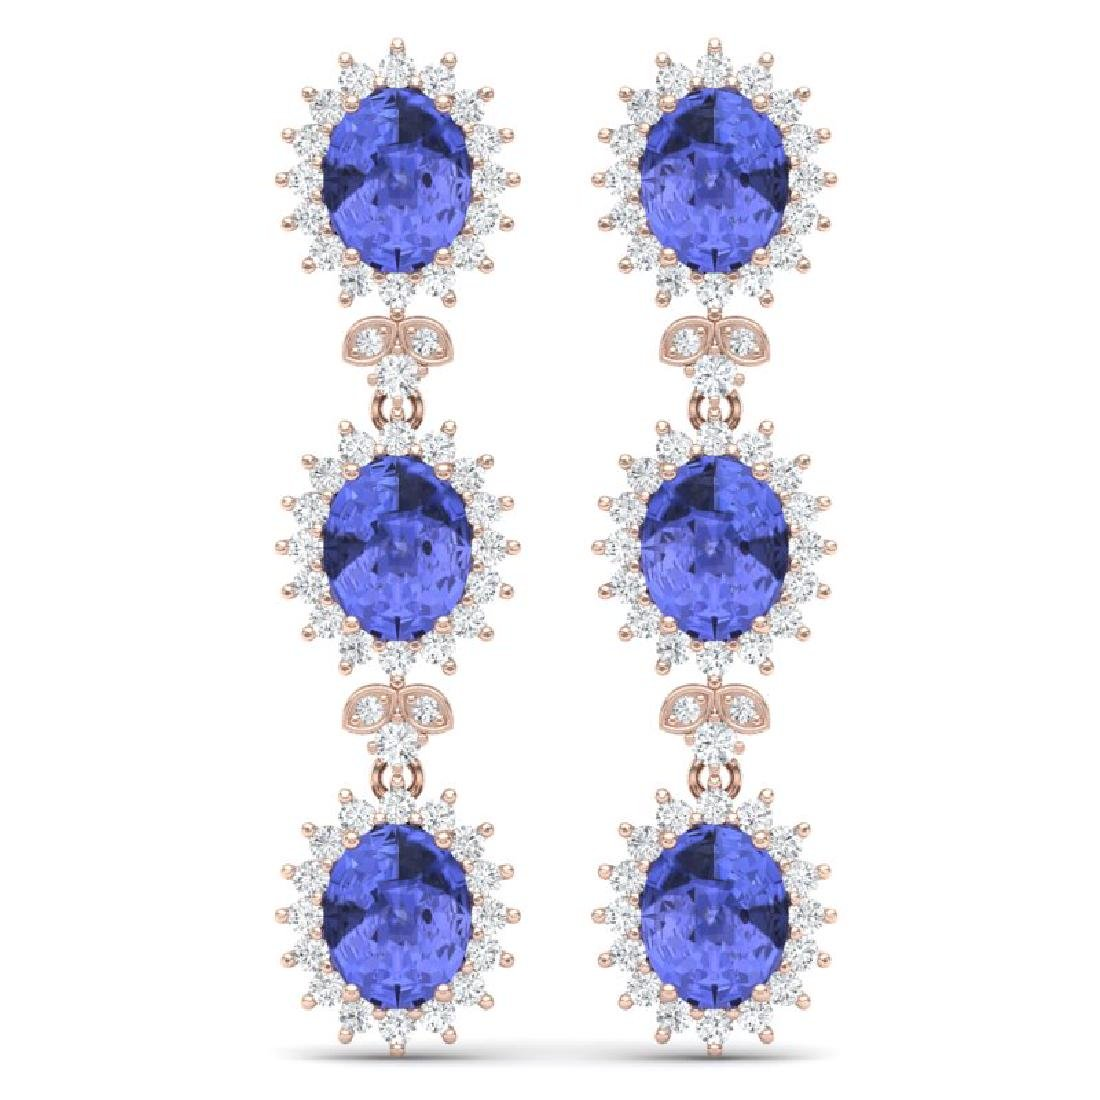 25.36 CTW Royalty Tanzanite & VS Diamond Earrings 18K